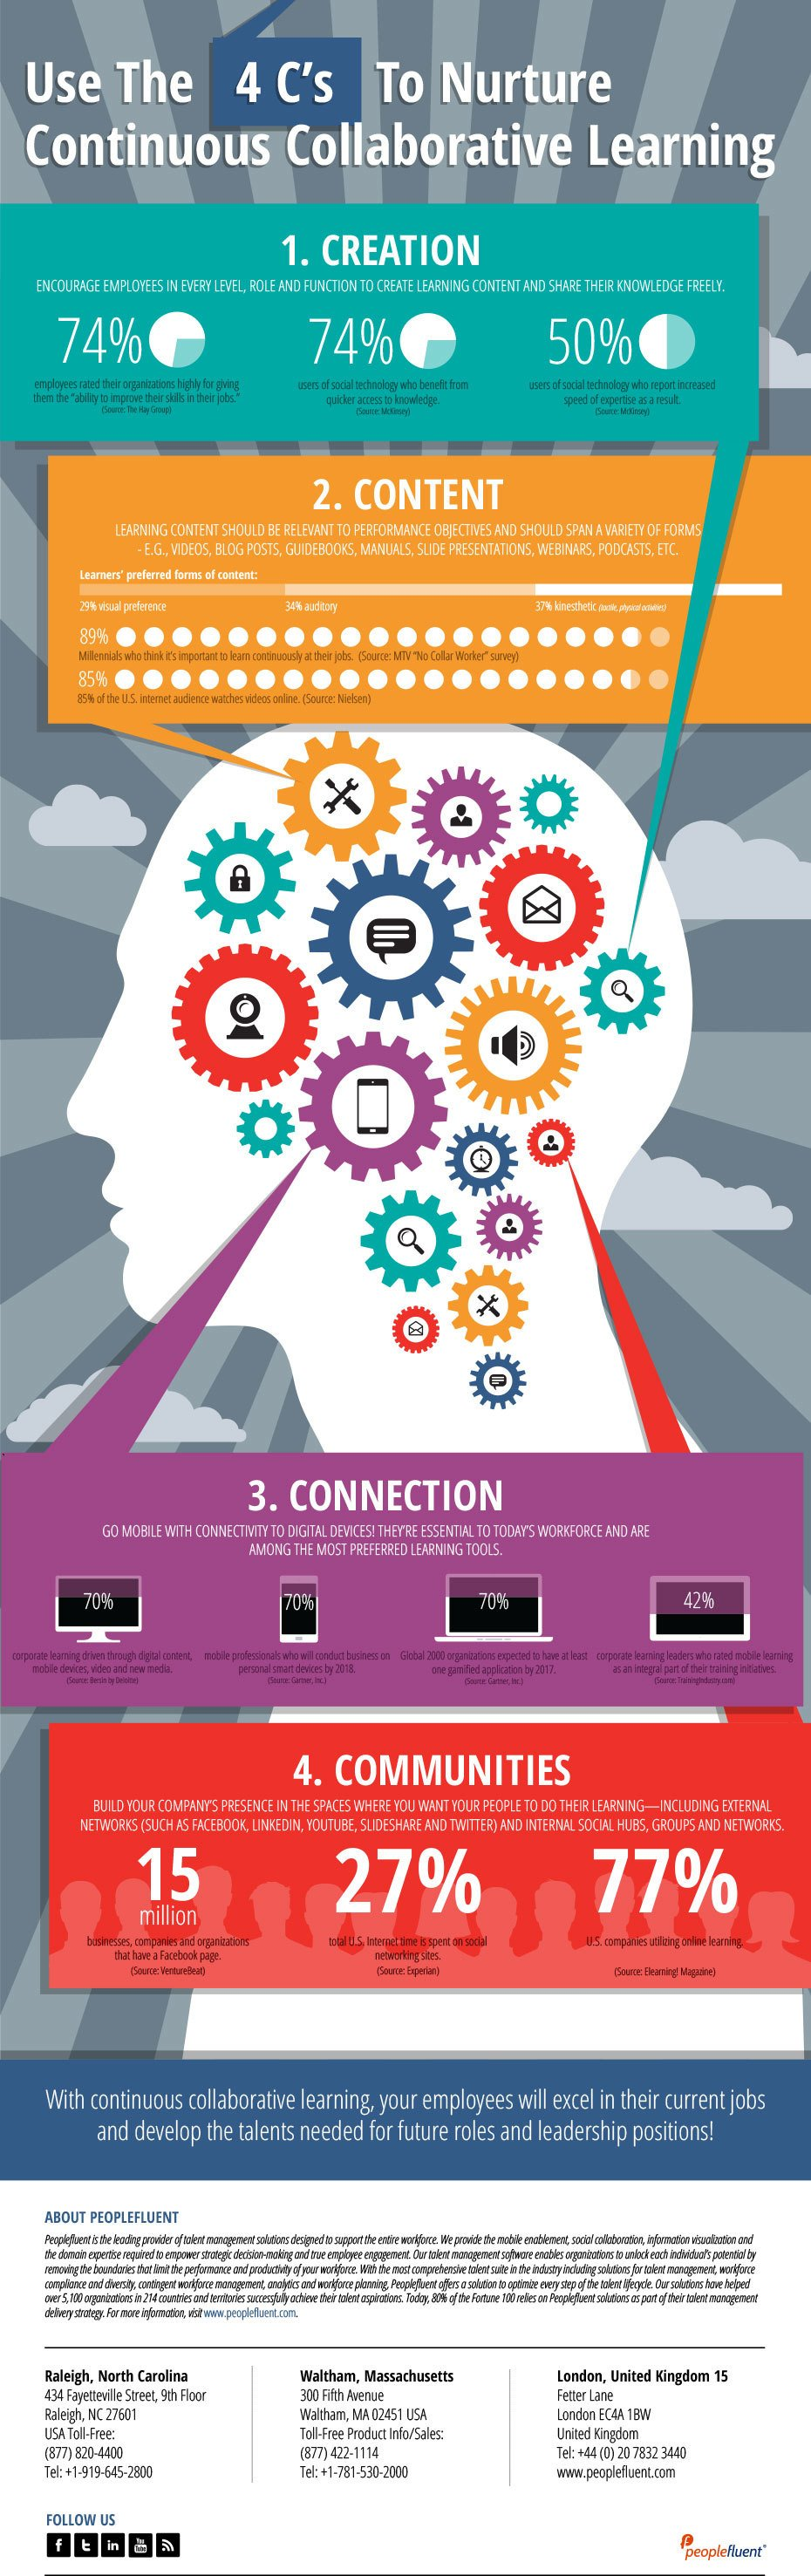 The 4 C's of Collaborative Learning Infographic